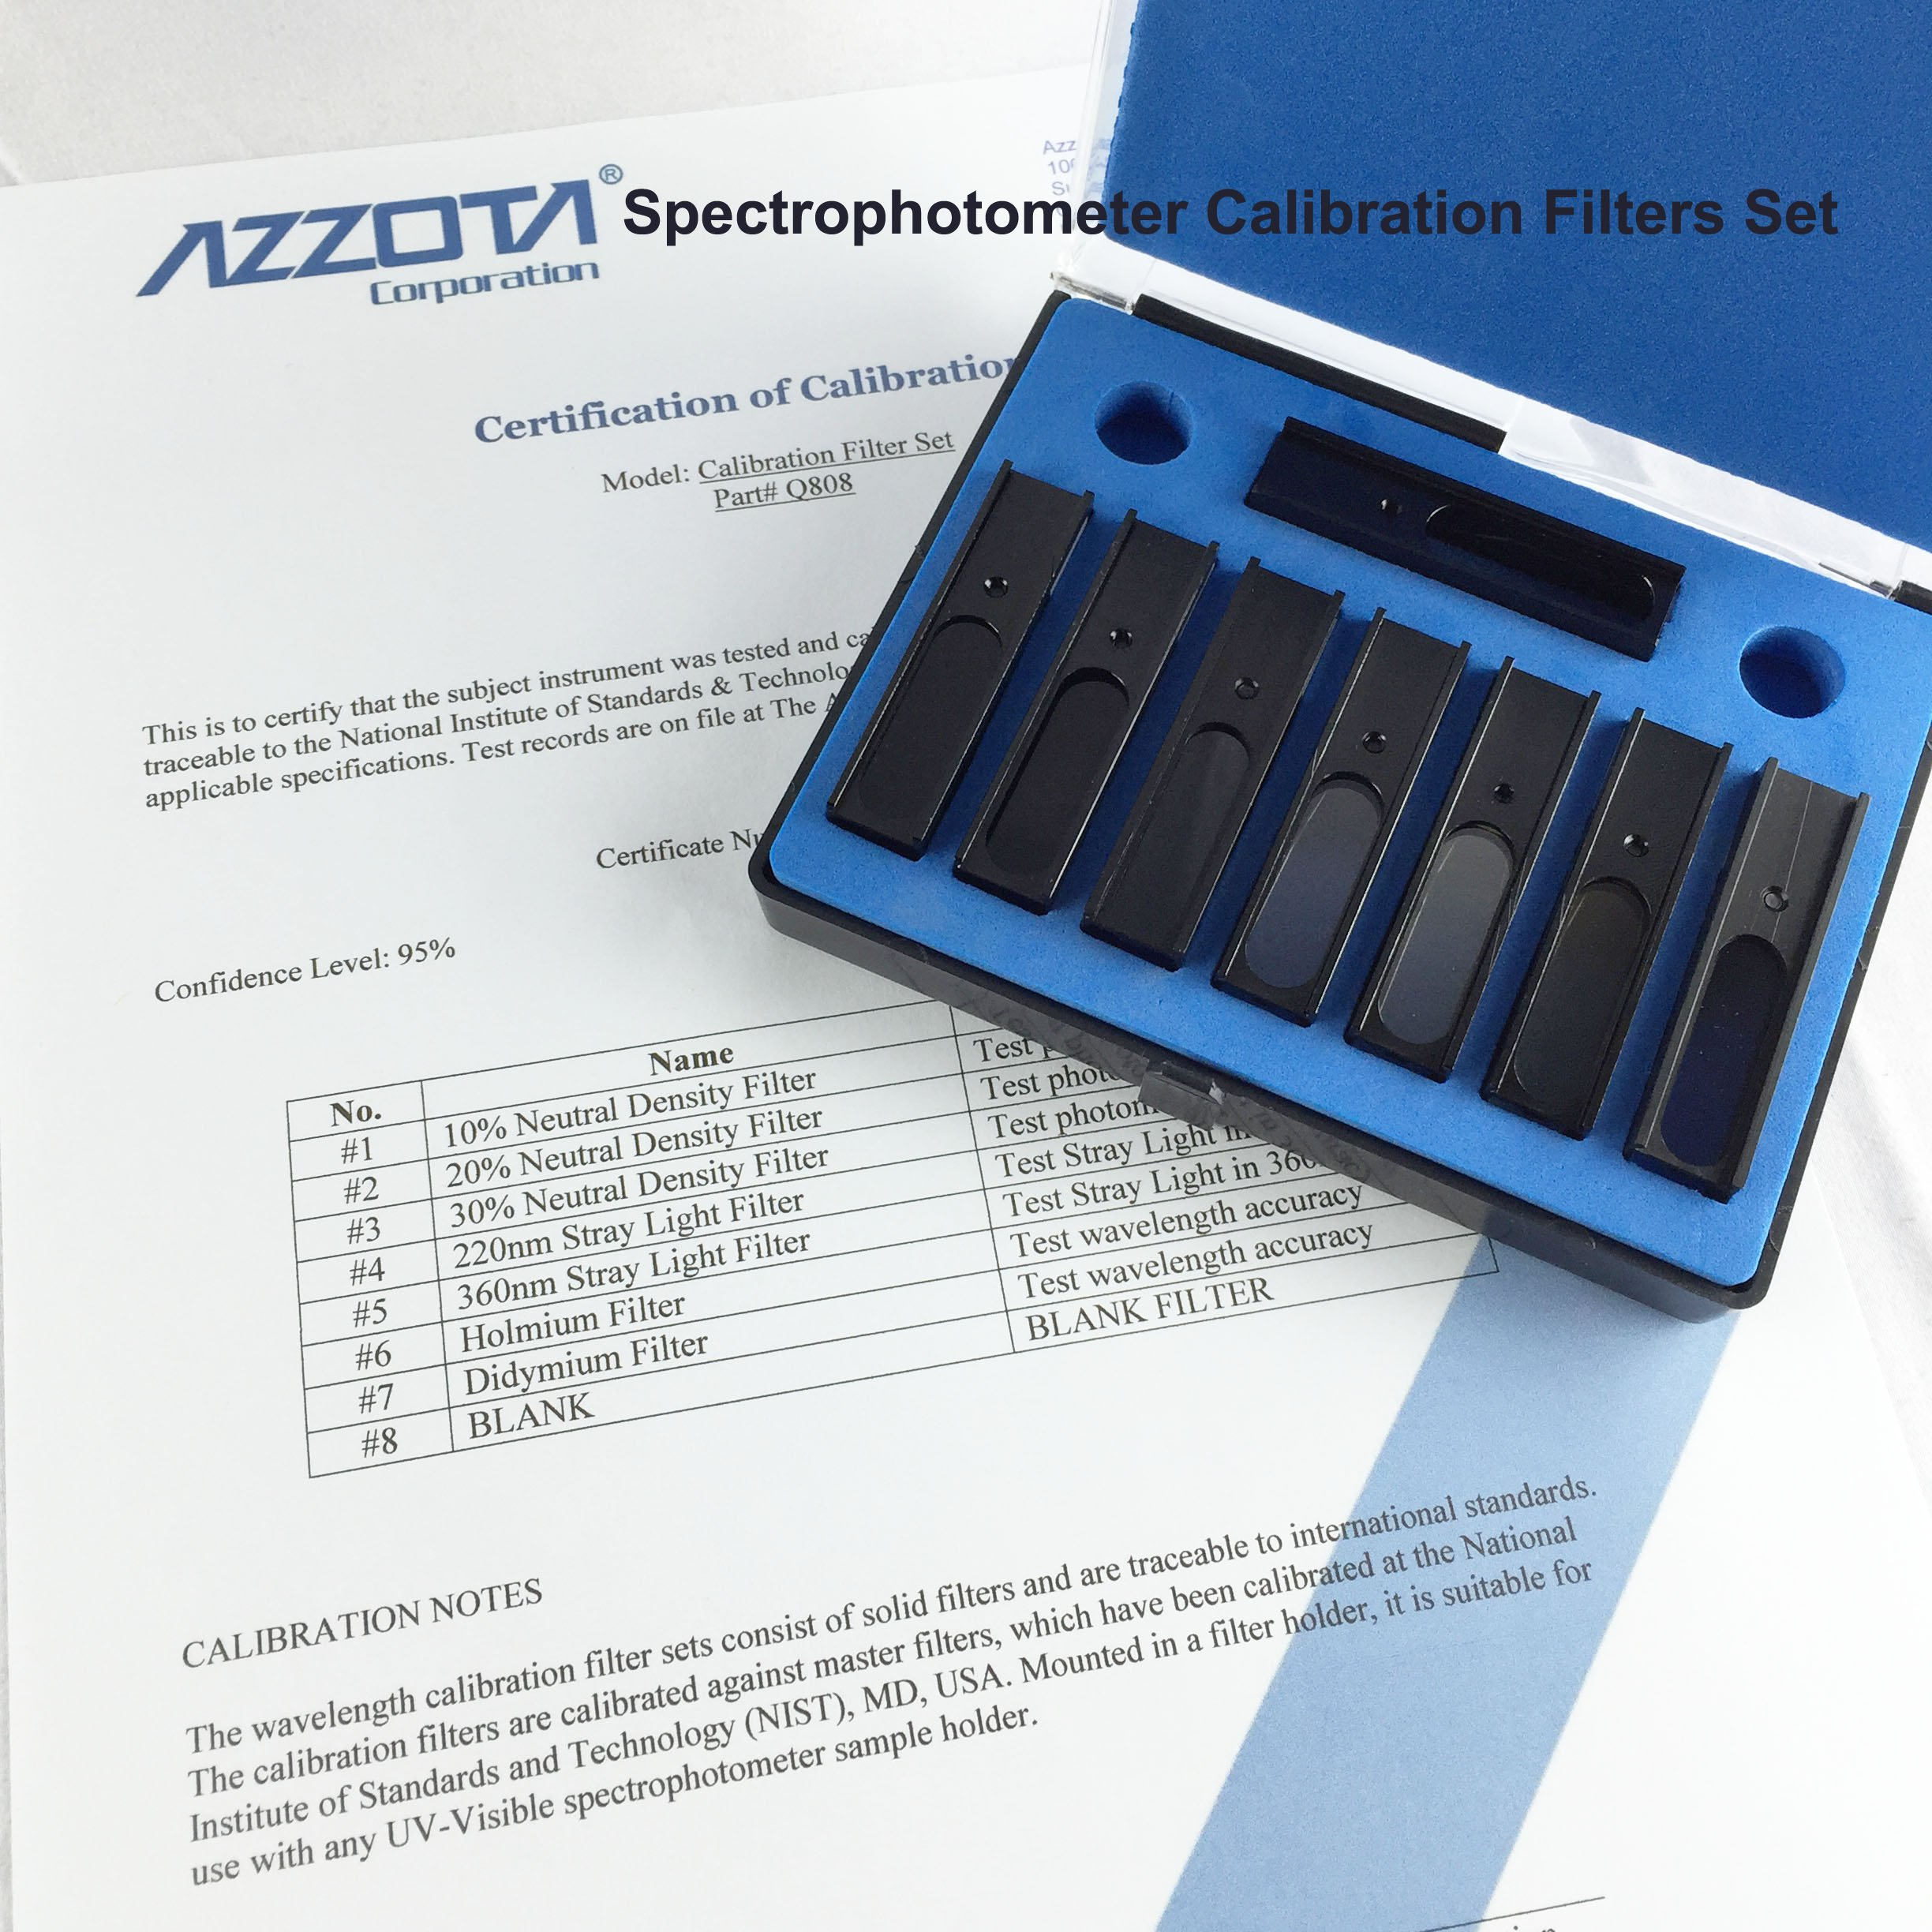 Azzota Stage Micrometers Slide - Horizontal 0.01 mm per division Stage Graticules length: 1 mm